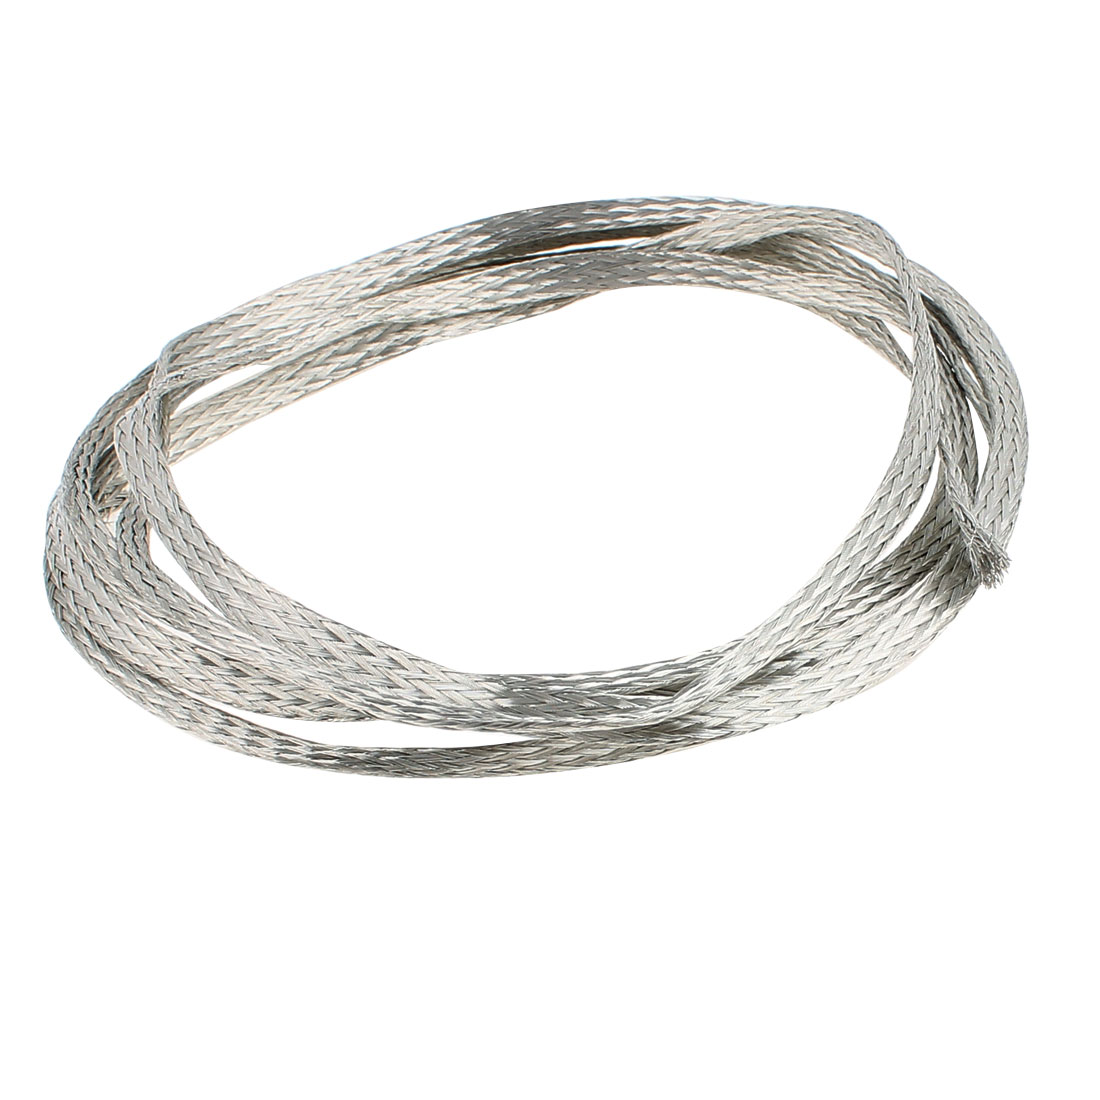 2.5 Square Millimeter Thickness 2M Length Flat Bare Tined Braided Copper Wire